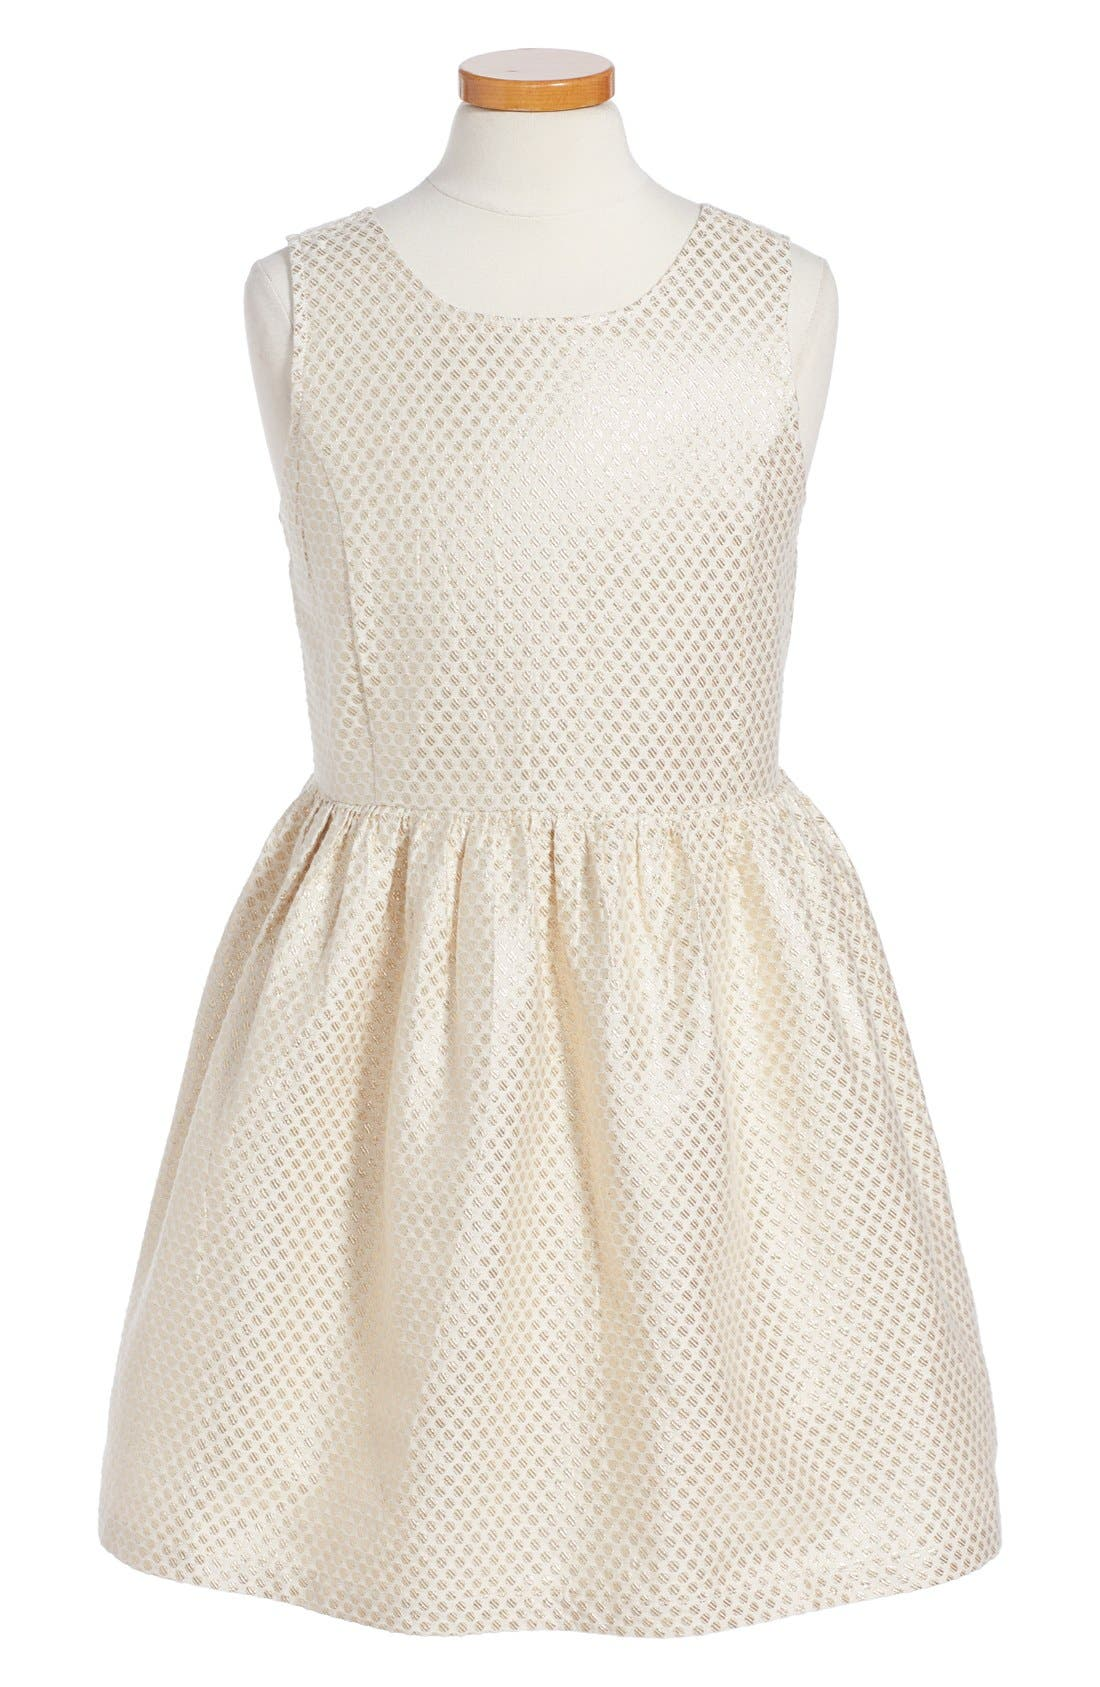 'Sophie' Metallic Dot Dress,                         Main,                         color, Ivory Vanilla-Gold Dot